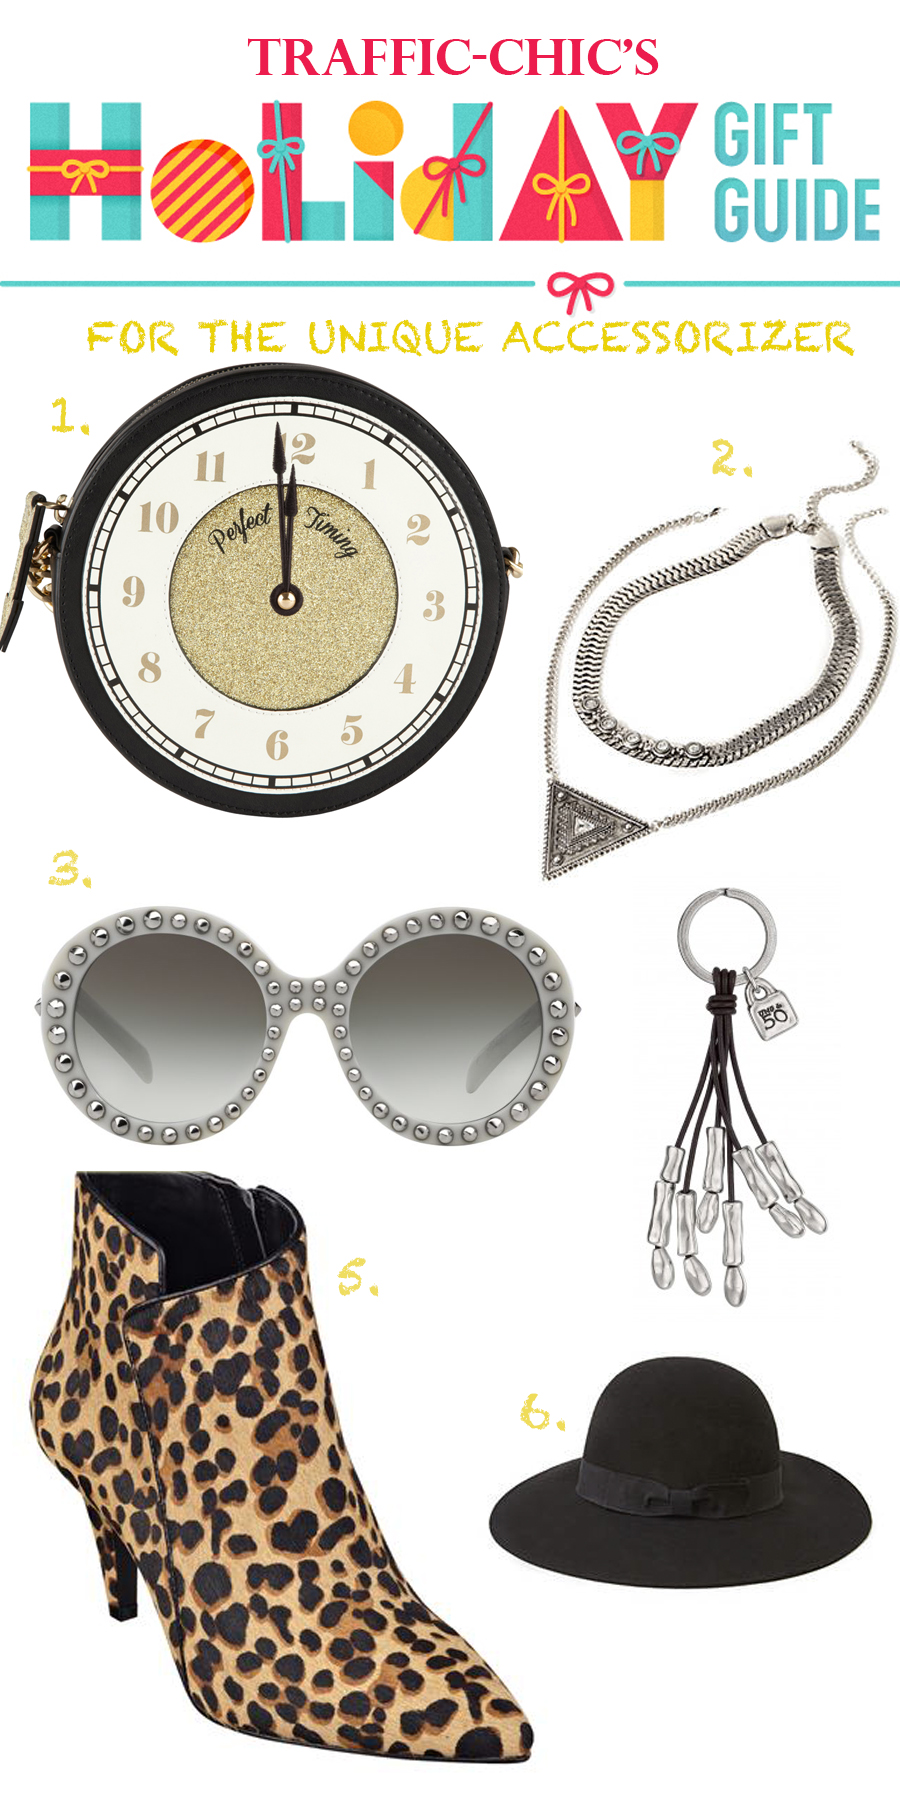 GIFT GUIDE ACCESSORIESpsd